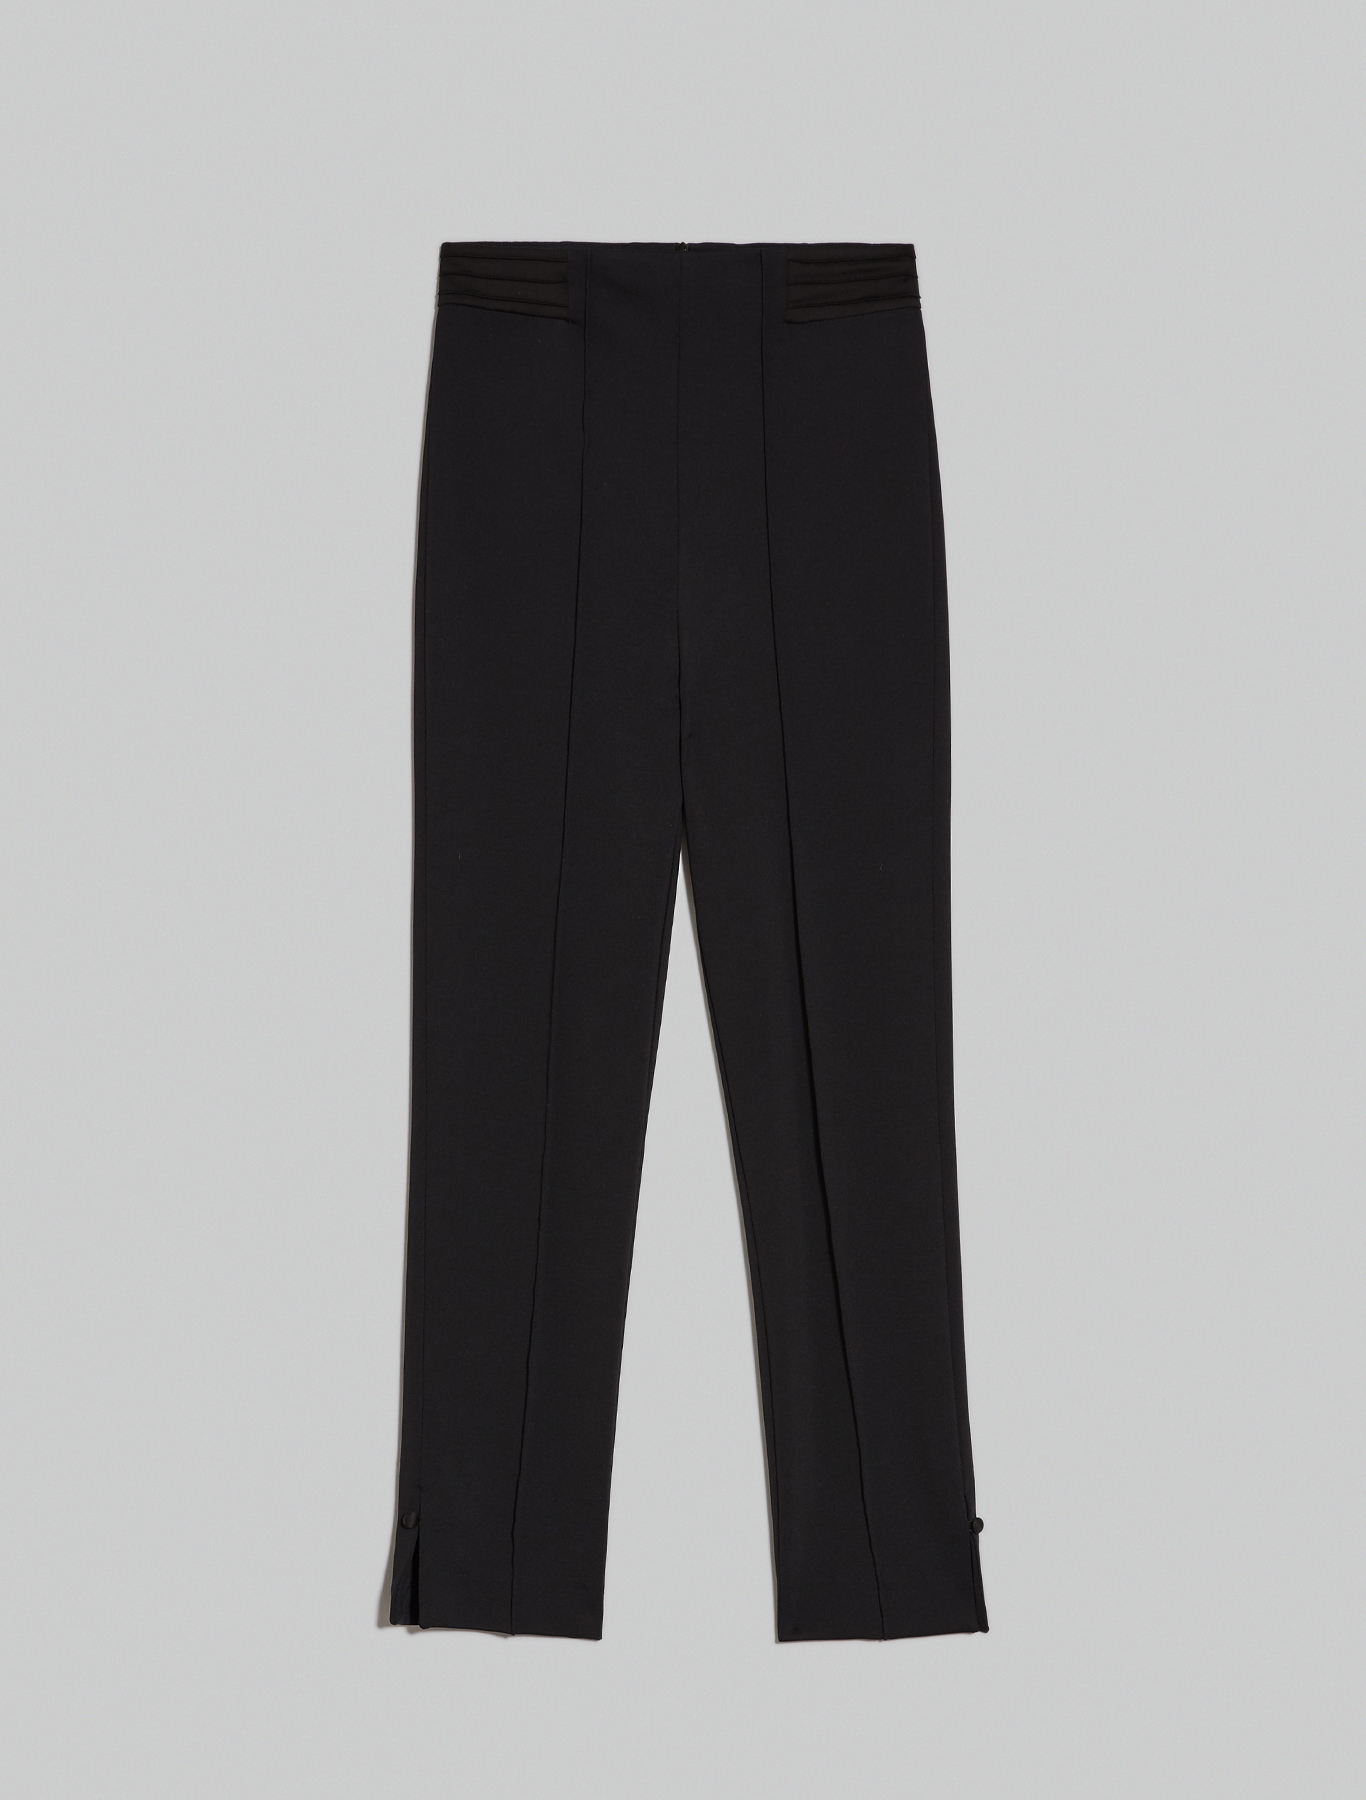 Skinny-fit jersey trousers - black - pennyblack